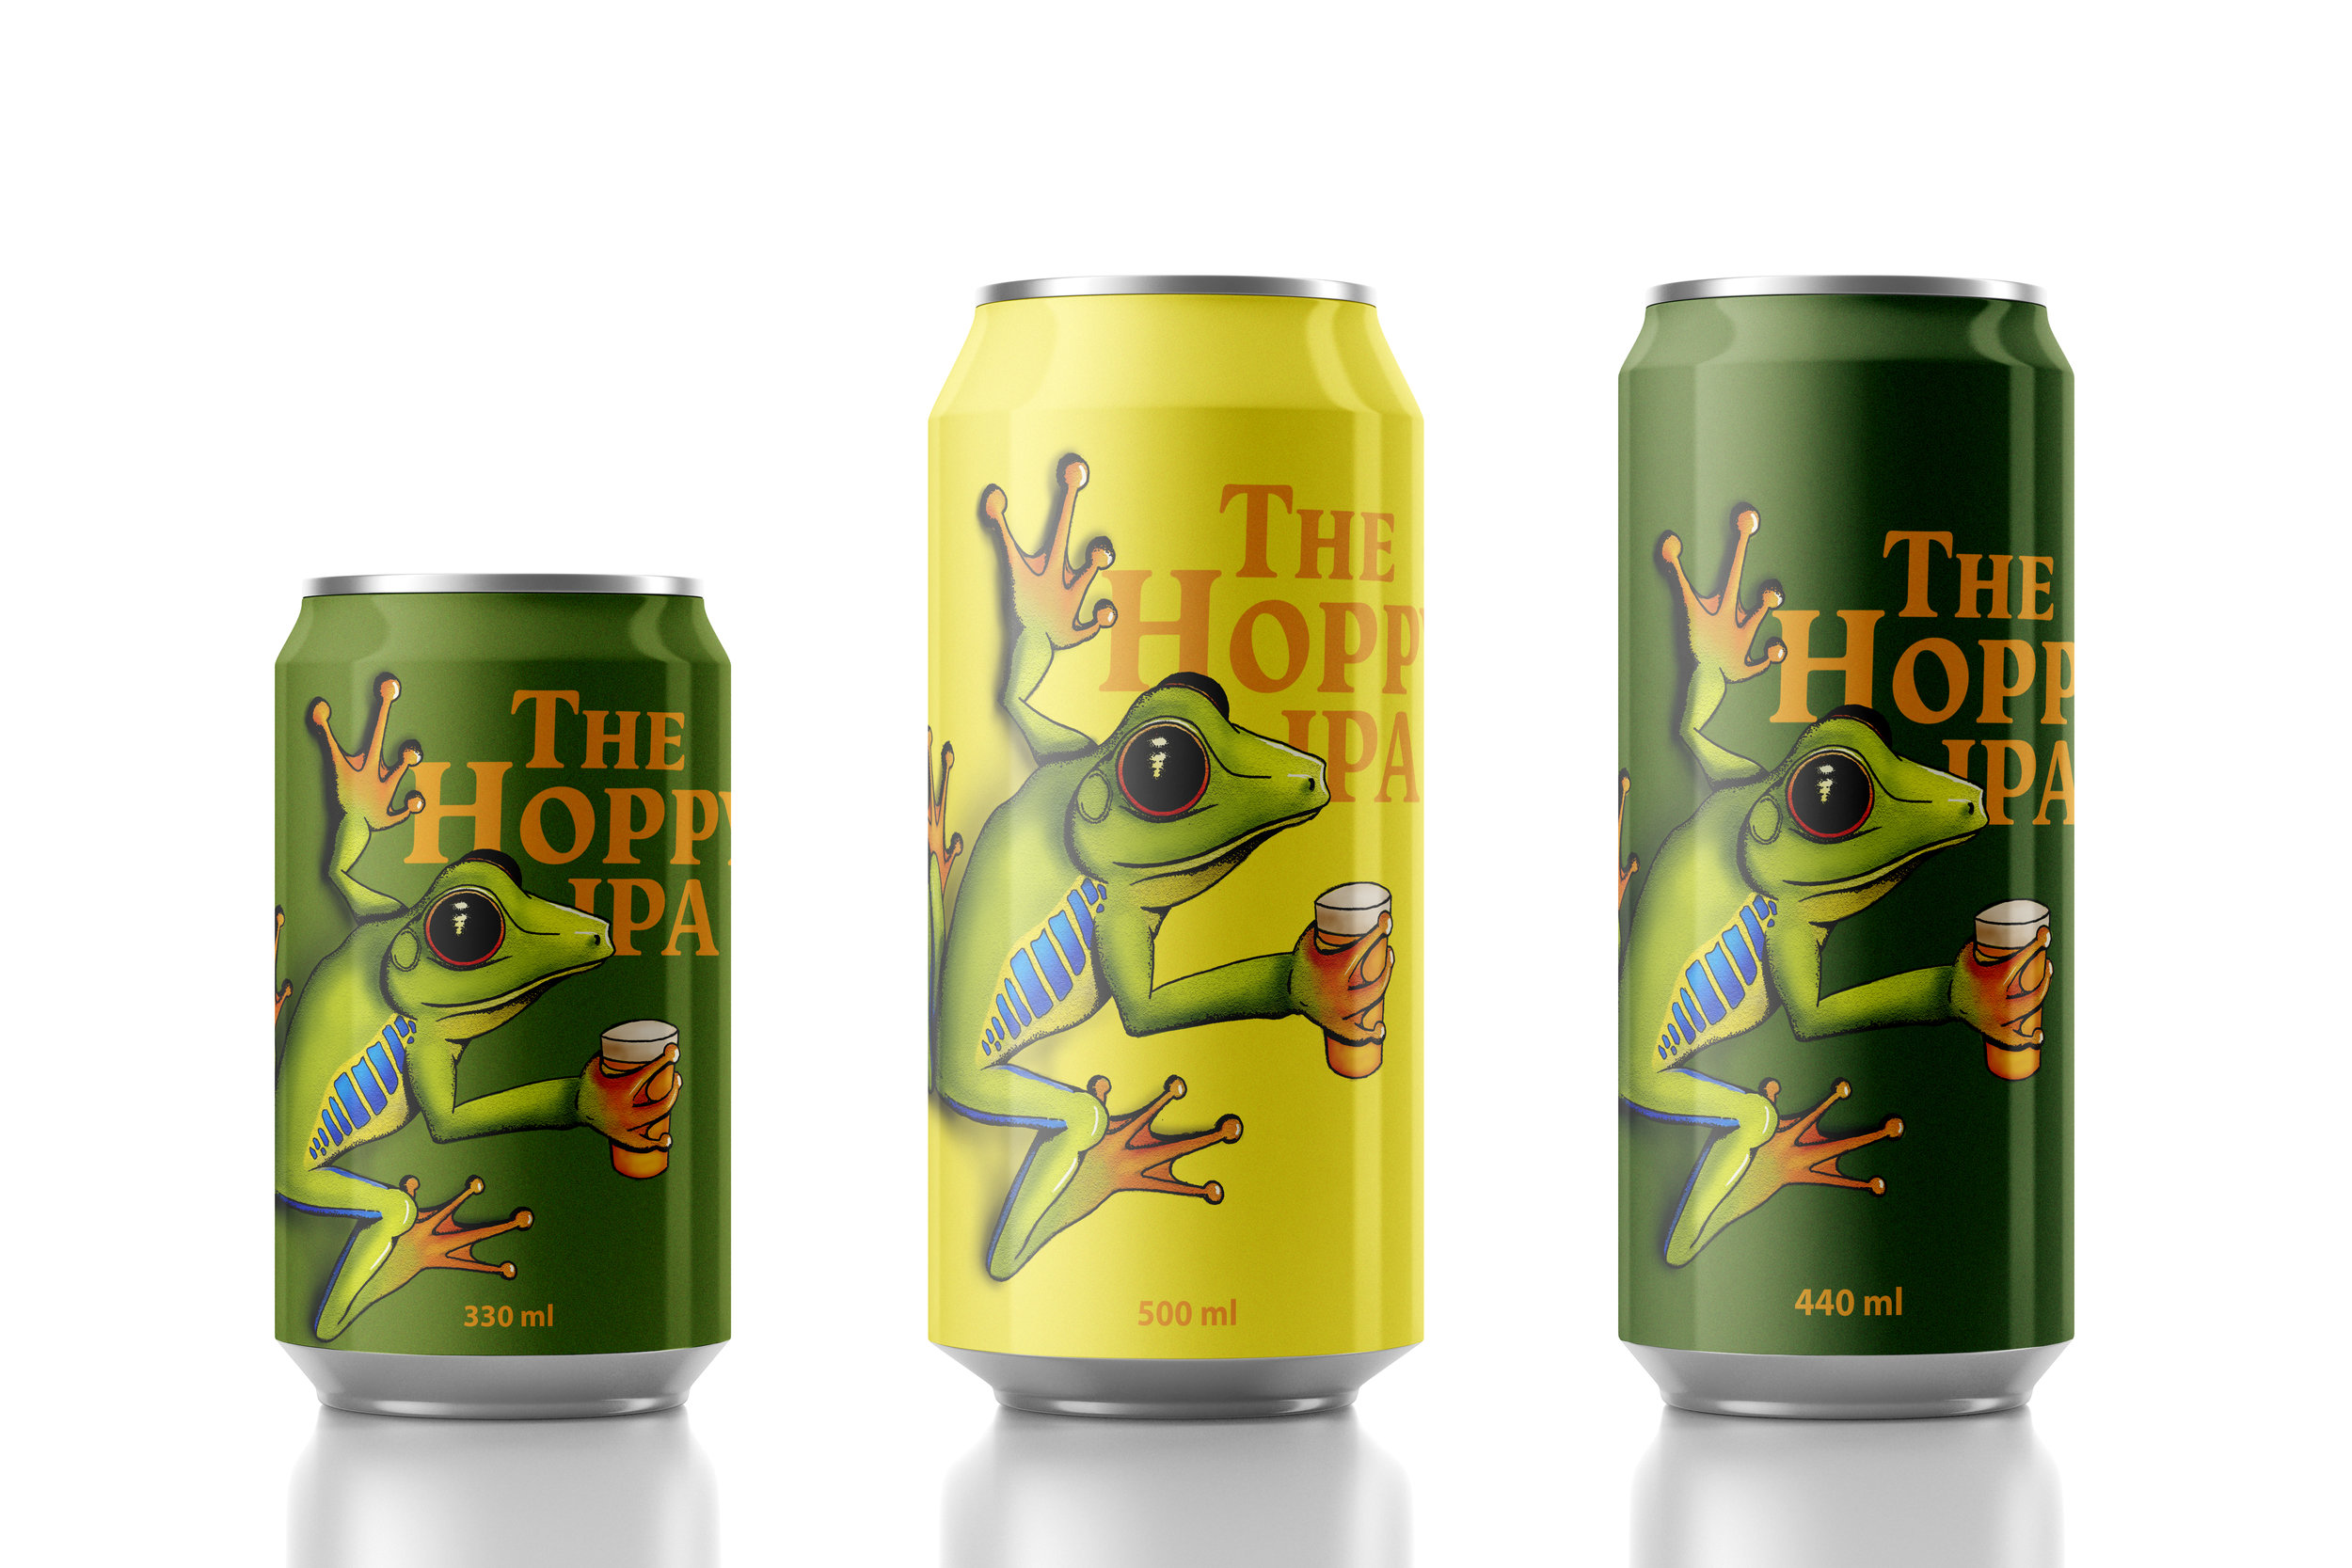 The Hoppy IPA